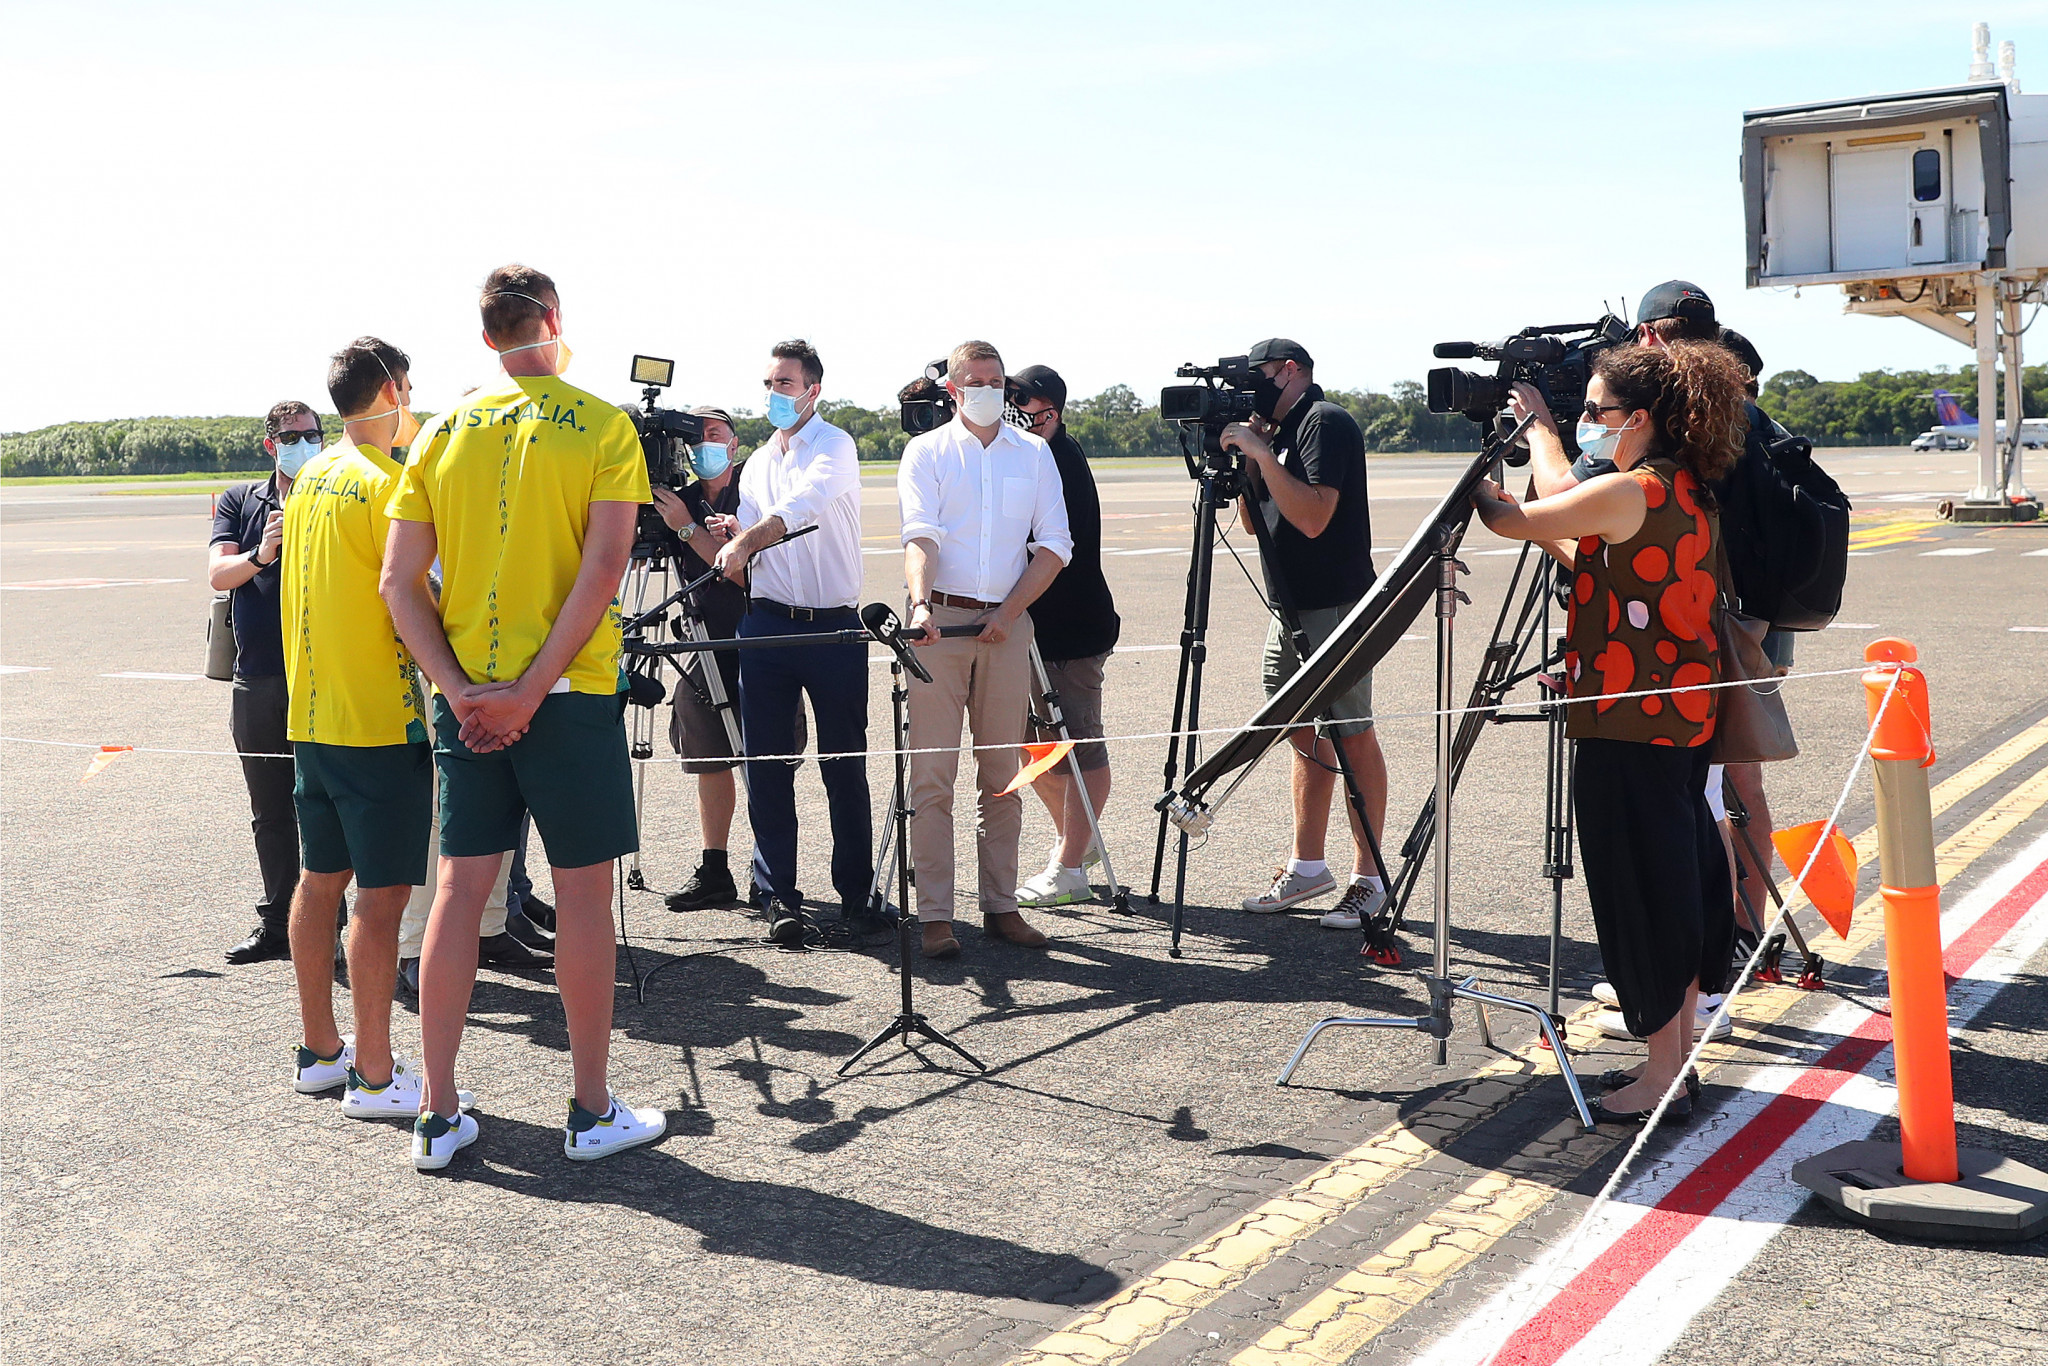 Australian athletics team locked down after staff member tests inconclusive